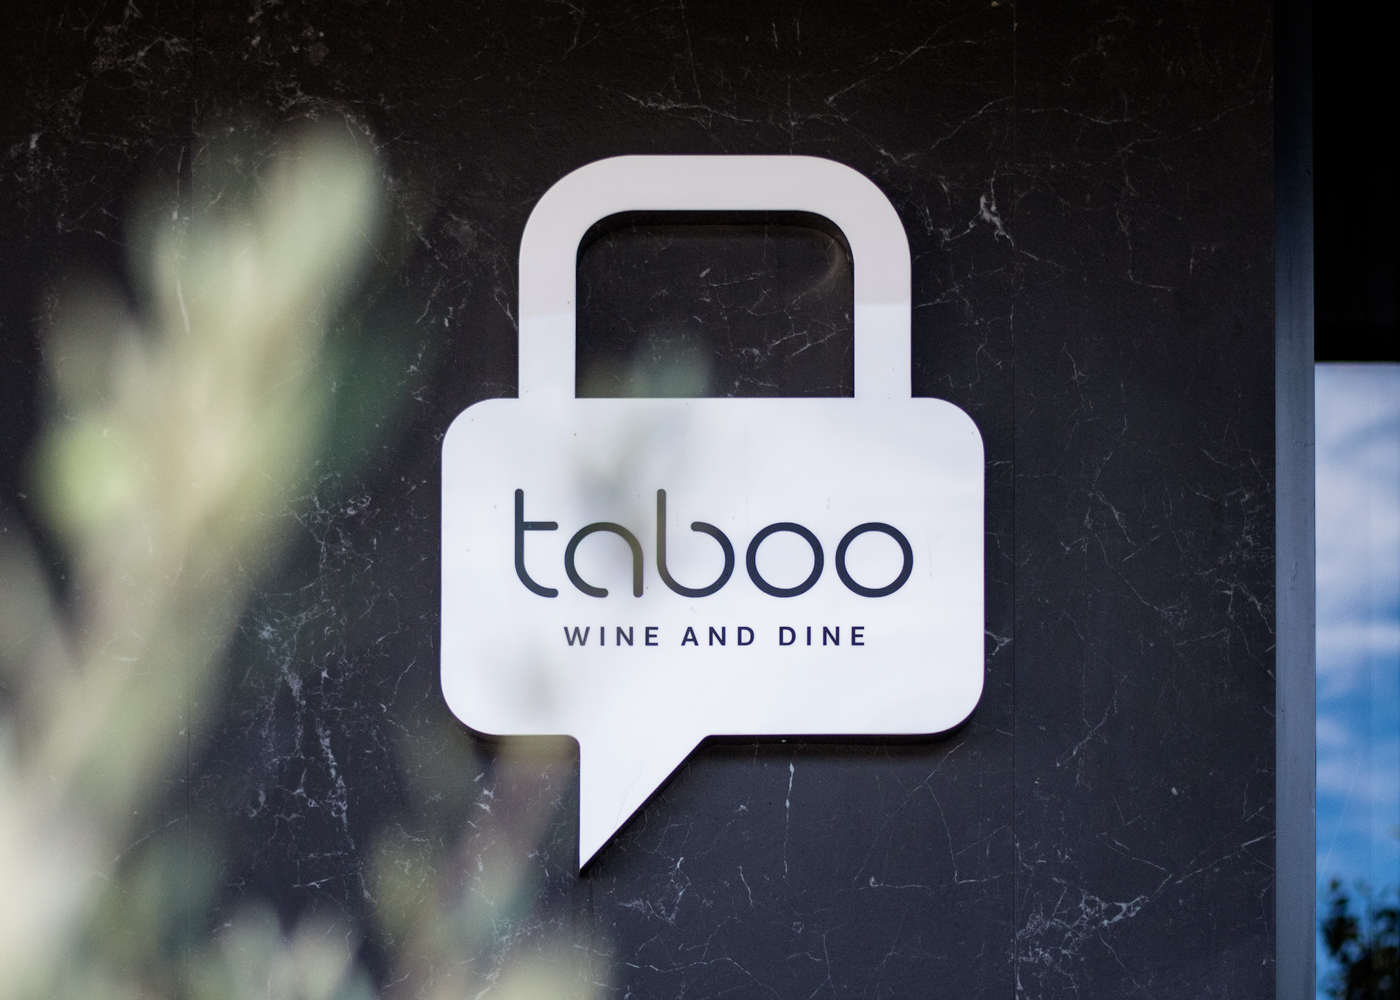 The verbal and visual identity of Taboo wine & dine restaurant